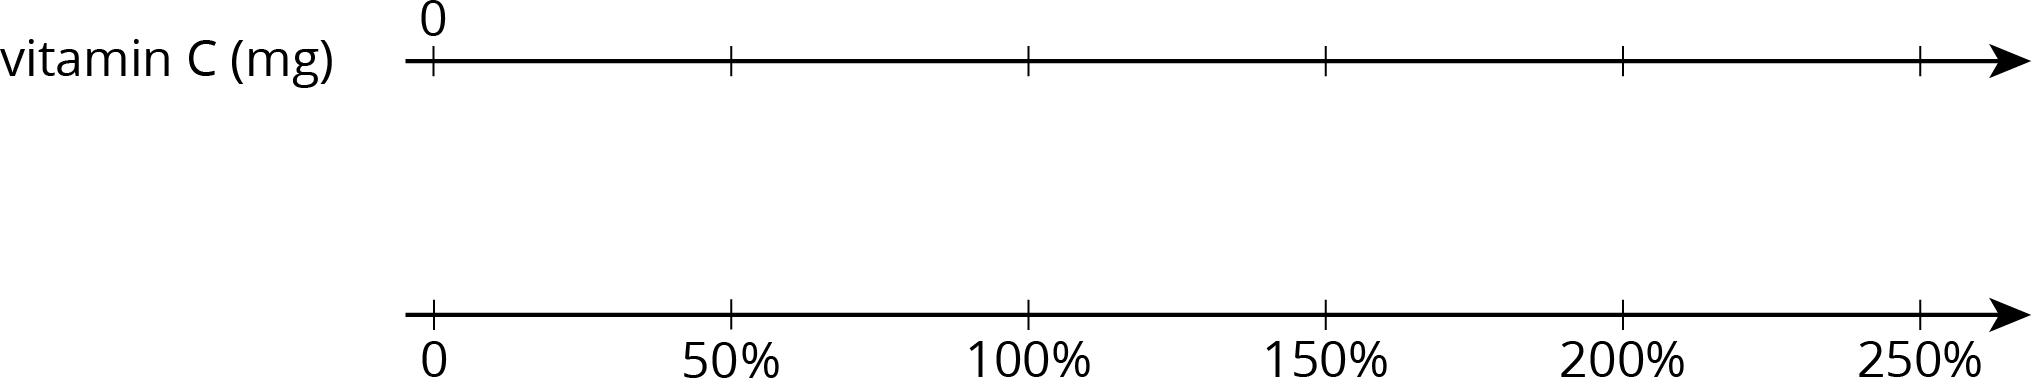 """A double number line with 6 evenly spaced tick marks. The top number line is labeled """"vitamin C, in milligrams"""" and the first tick mark is labeled 0. The other tick marks are unlabeled. The bottom number line is not labeled and starting with the first tick mark 0, 50 percent, 100 percent, 150 percent, 200 percent, and 250 percent are labeled."""